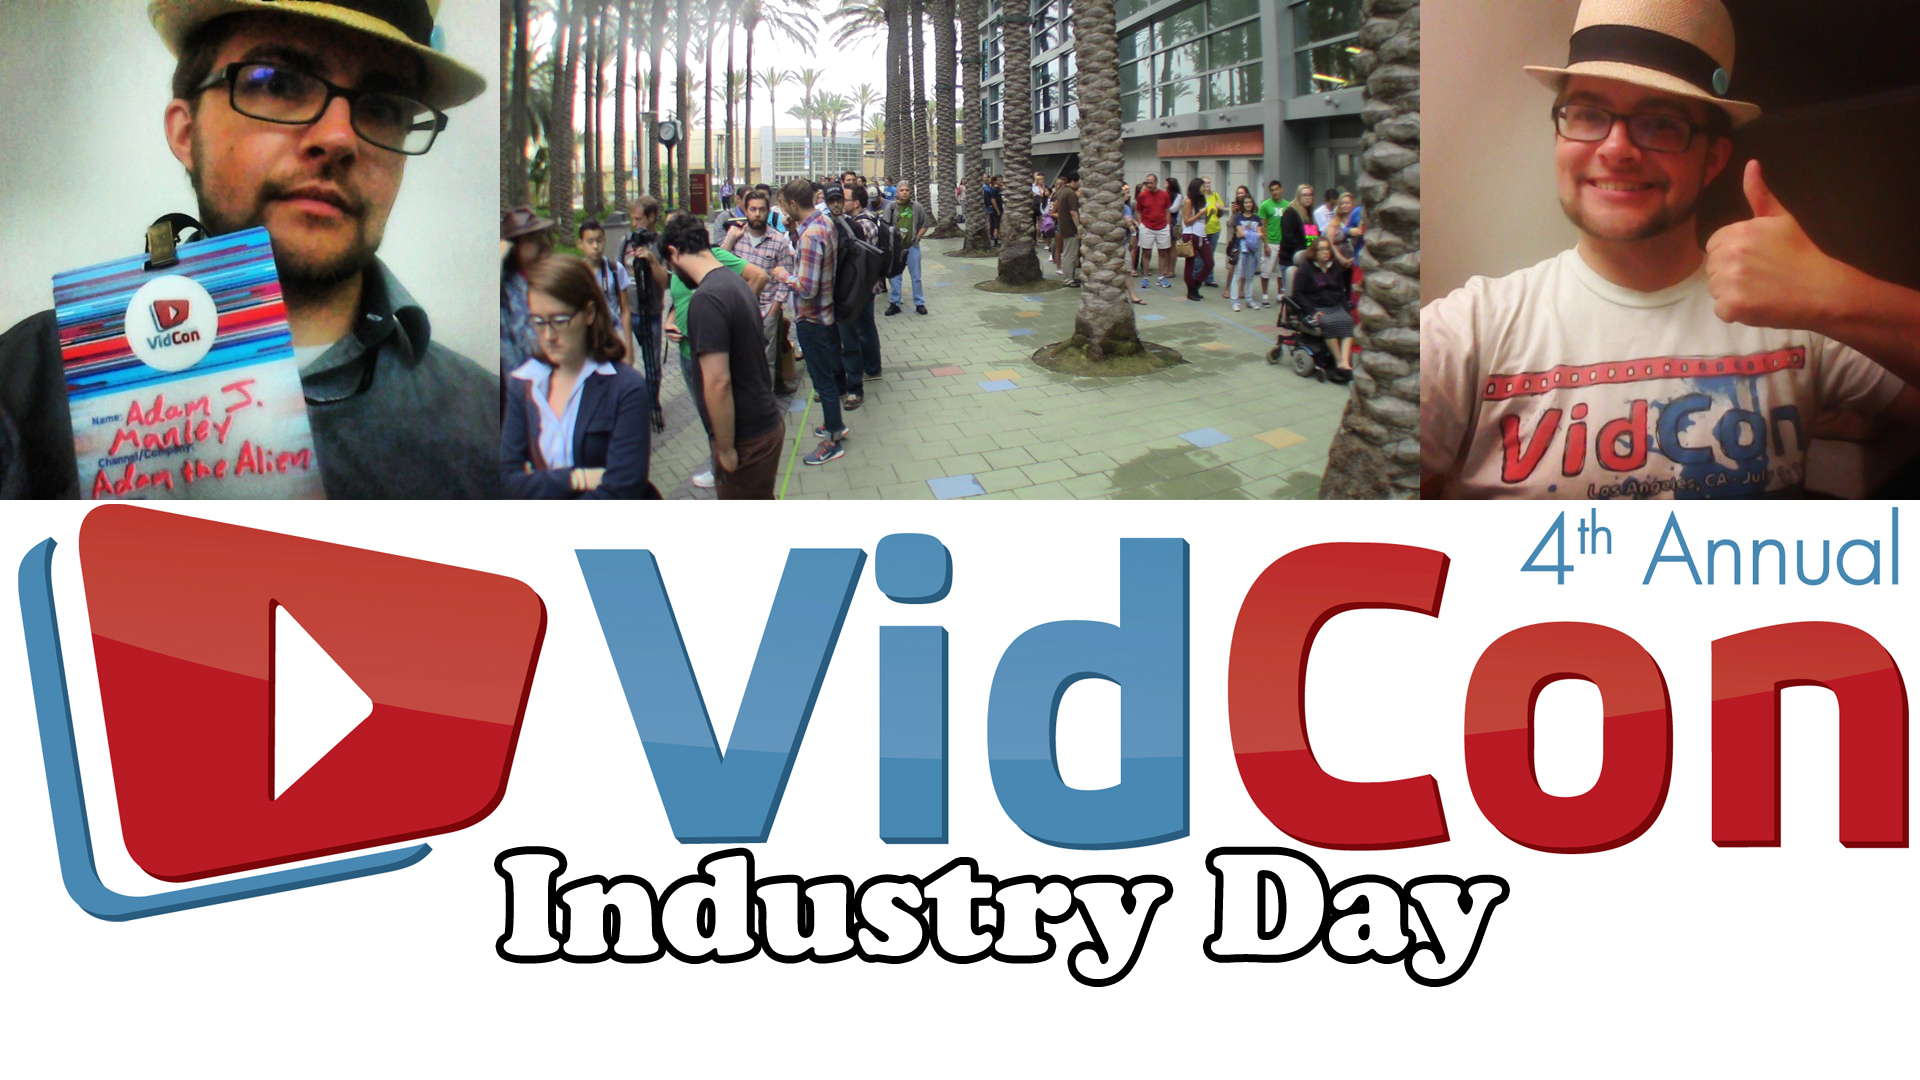 2013-08-01 Vidcon Industry Day